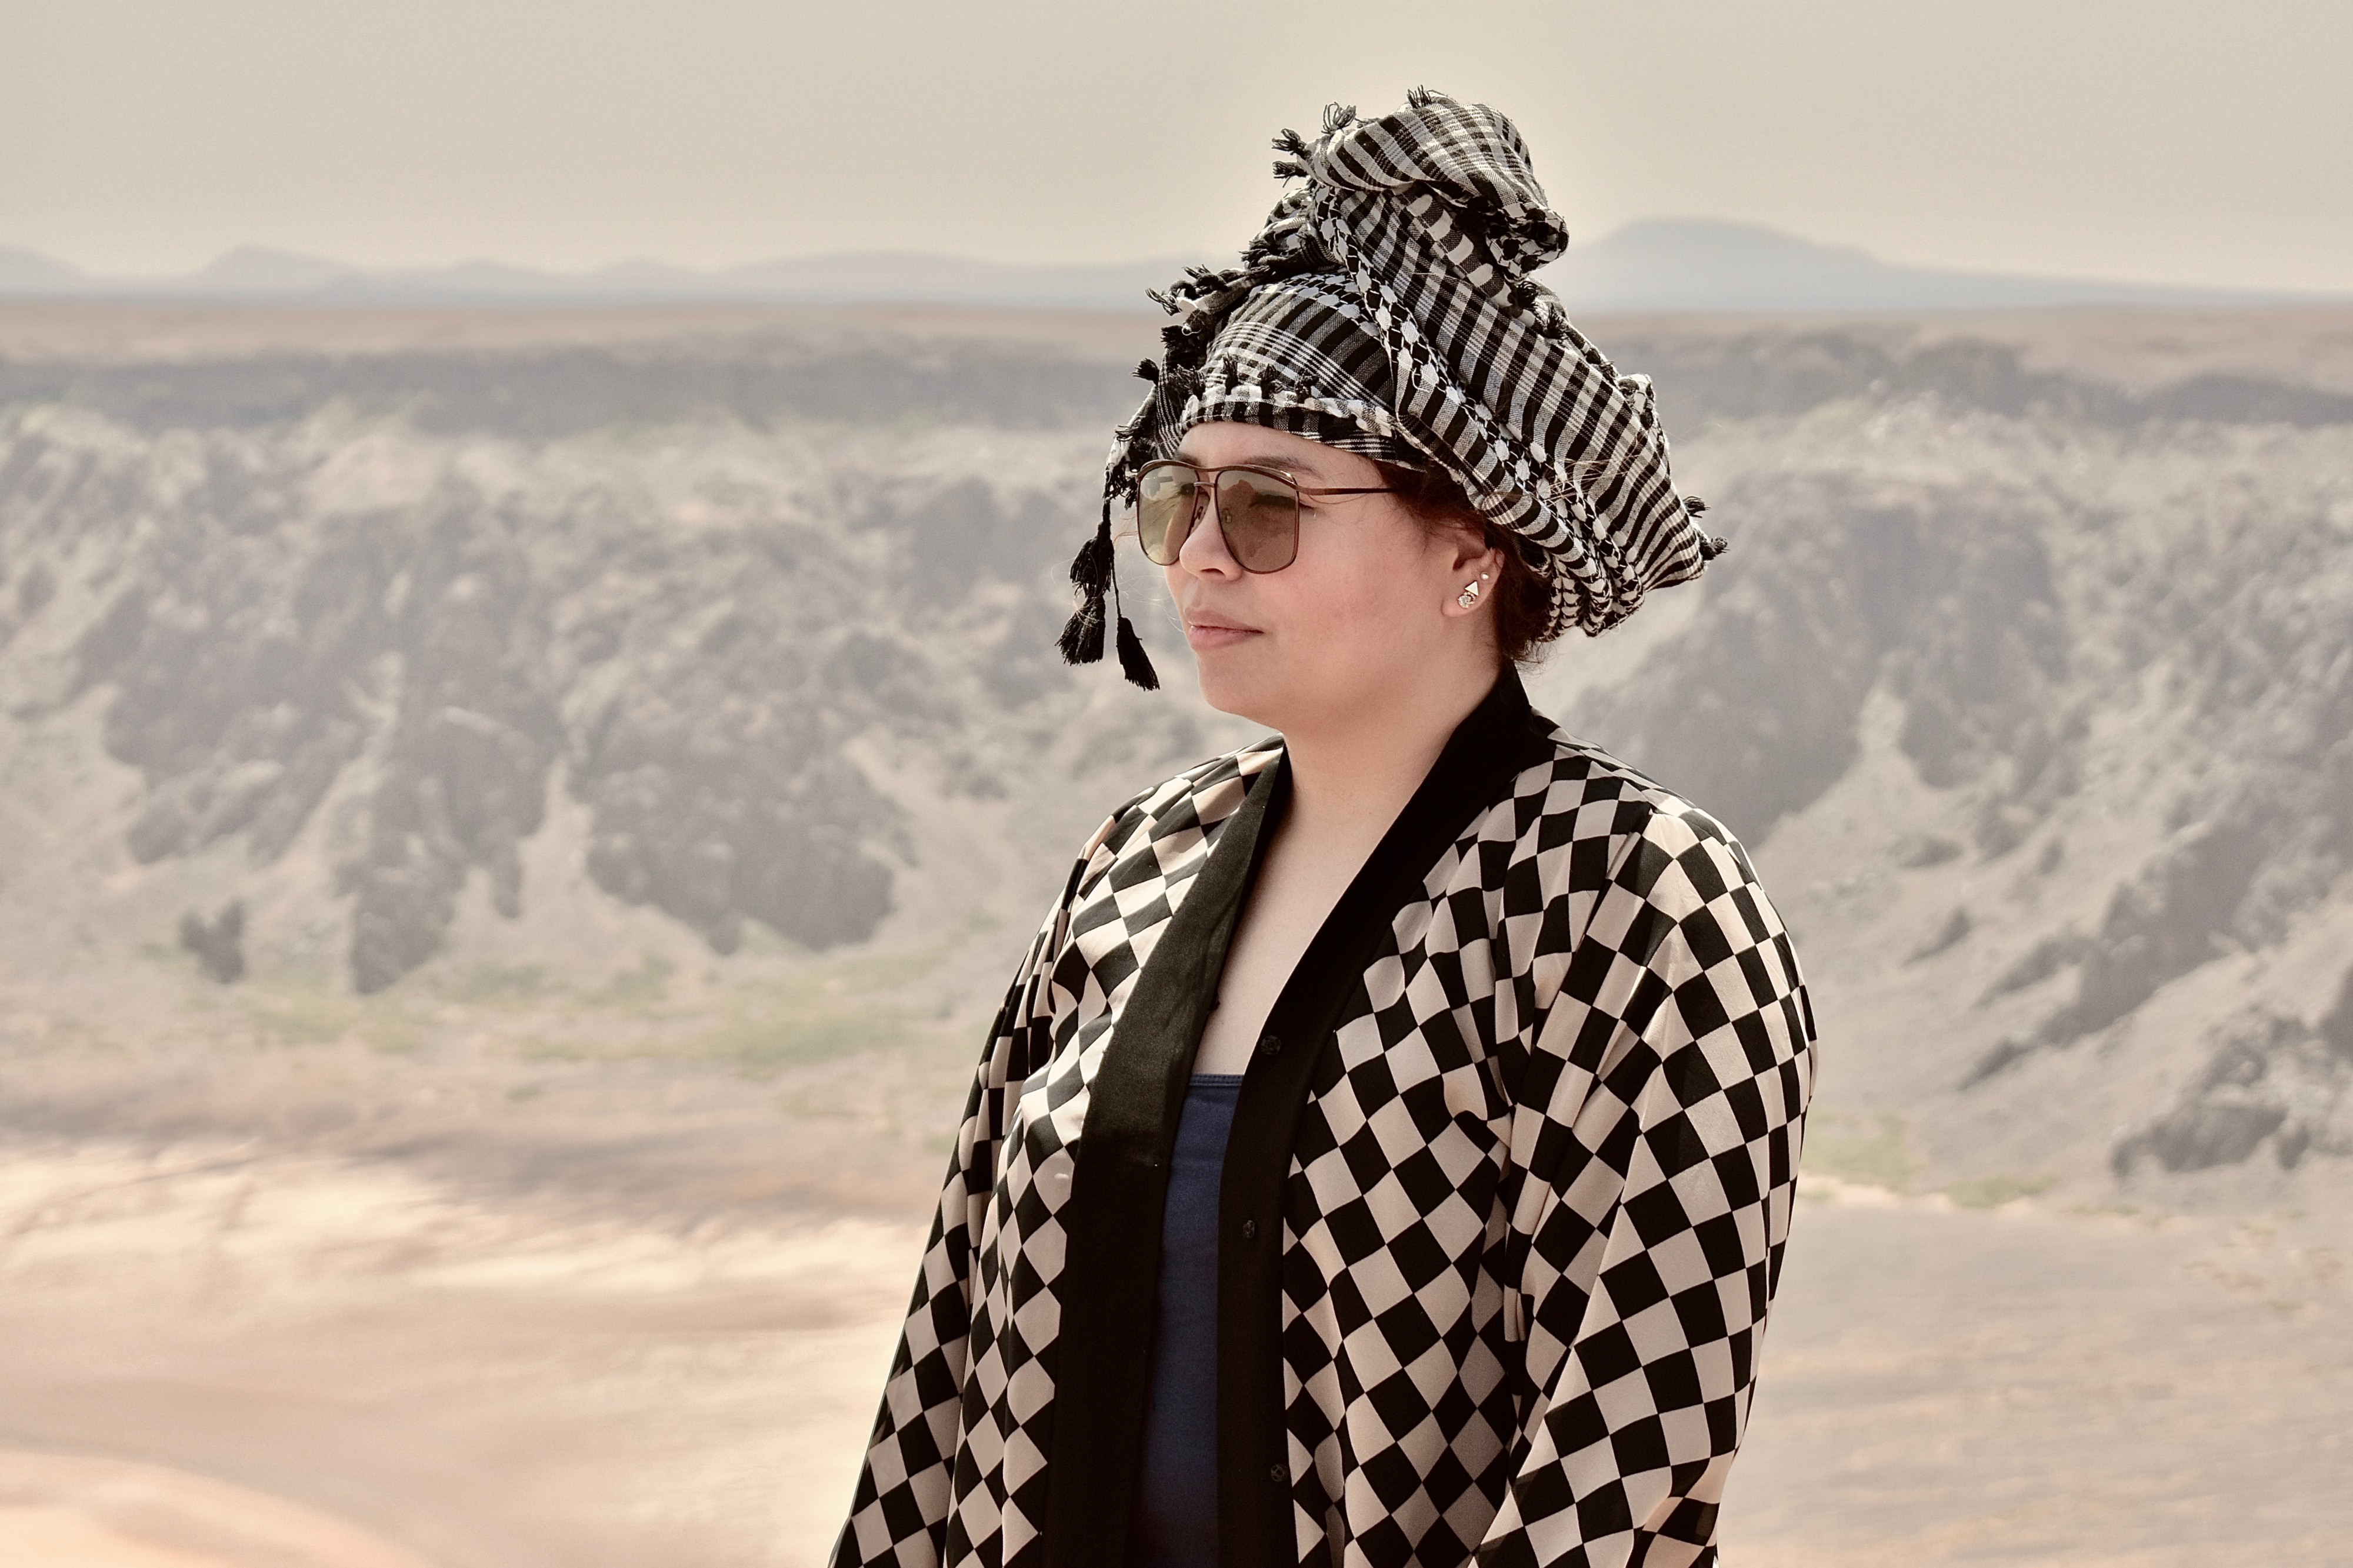 A beautiful tourist standing at the top of a passive volcanic crater in Saudi Arabia